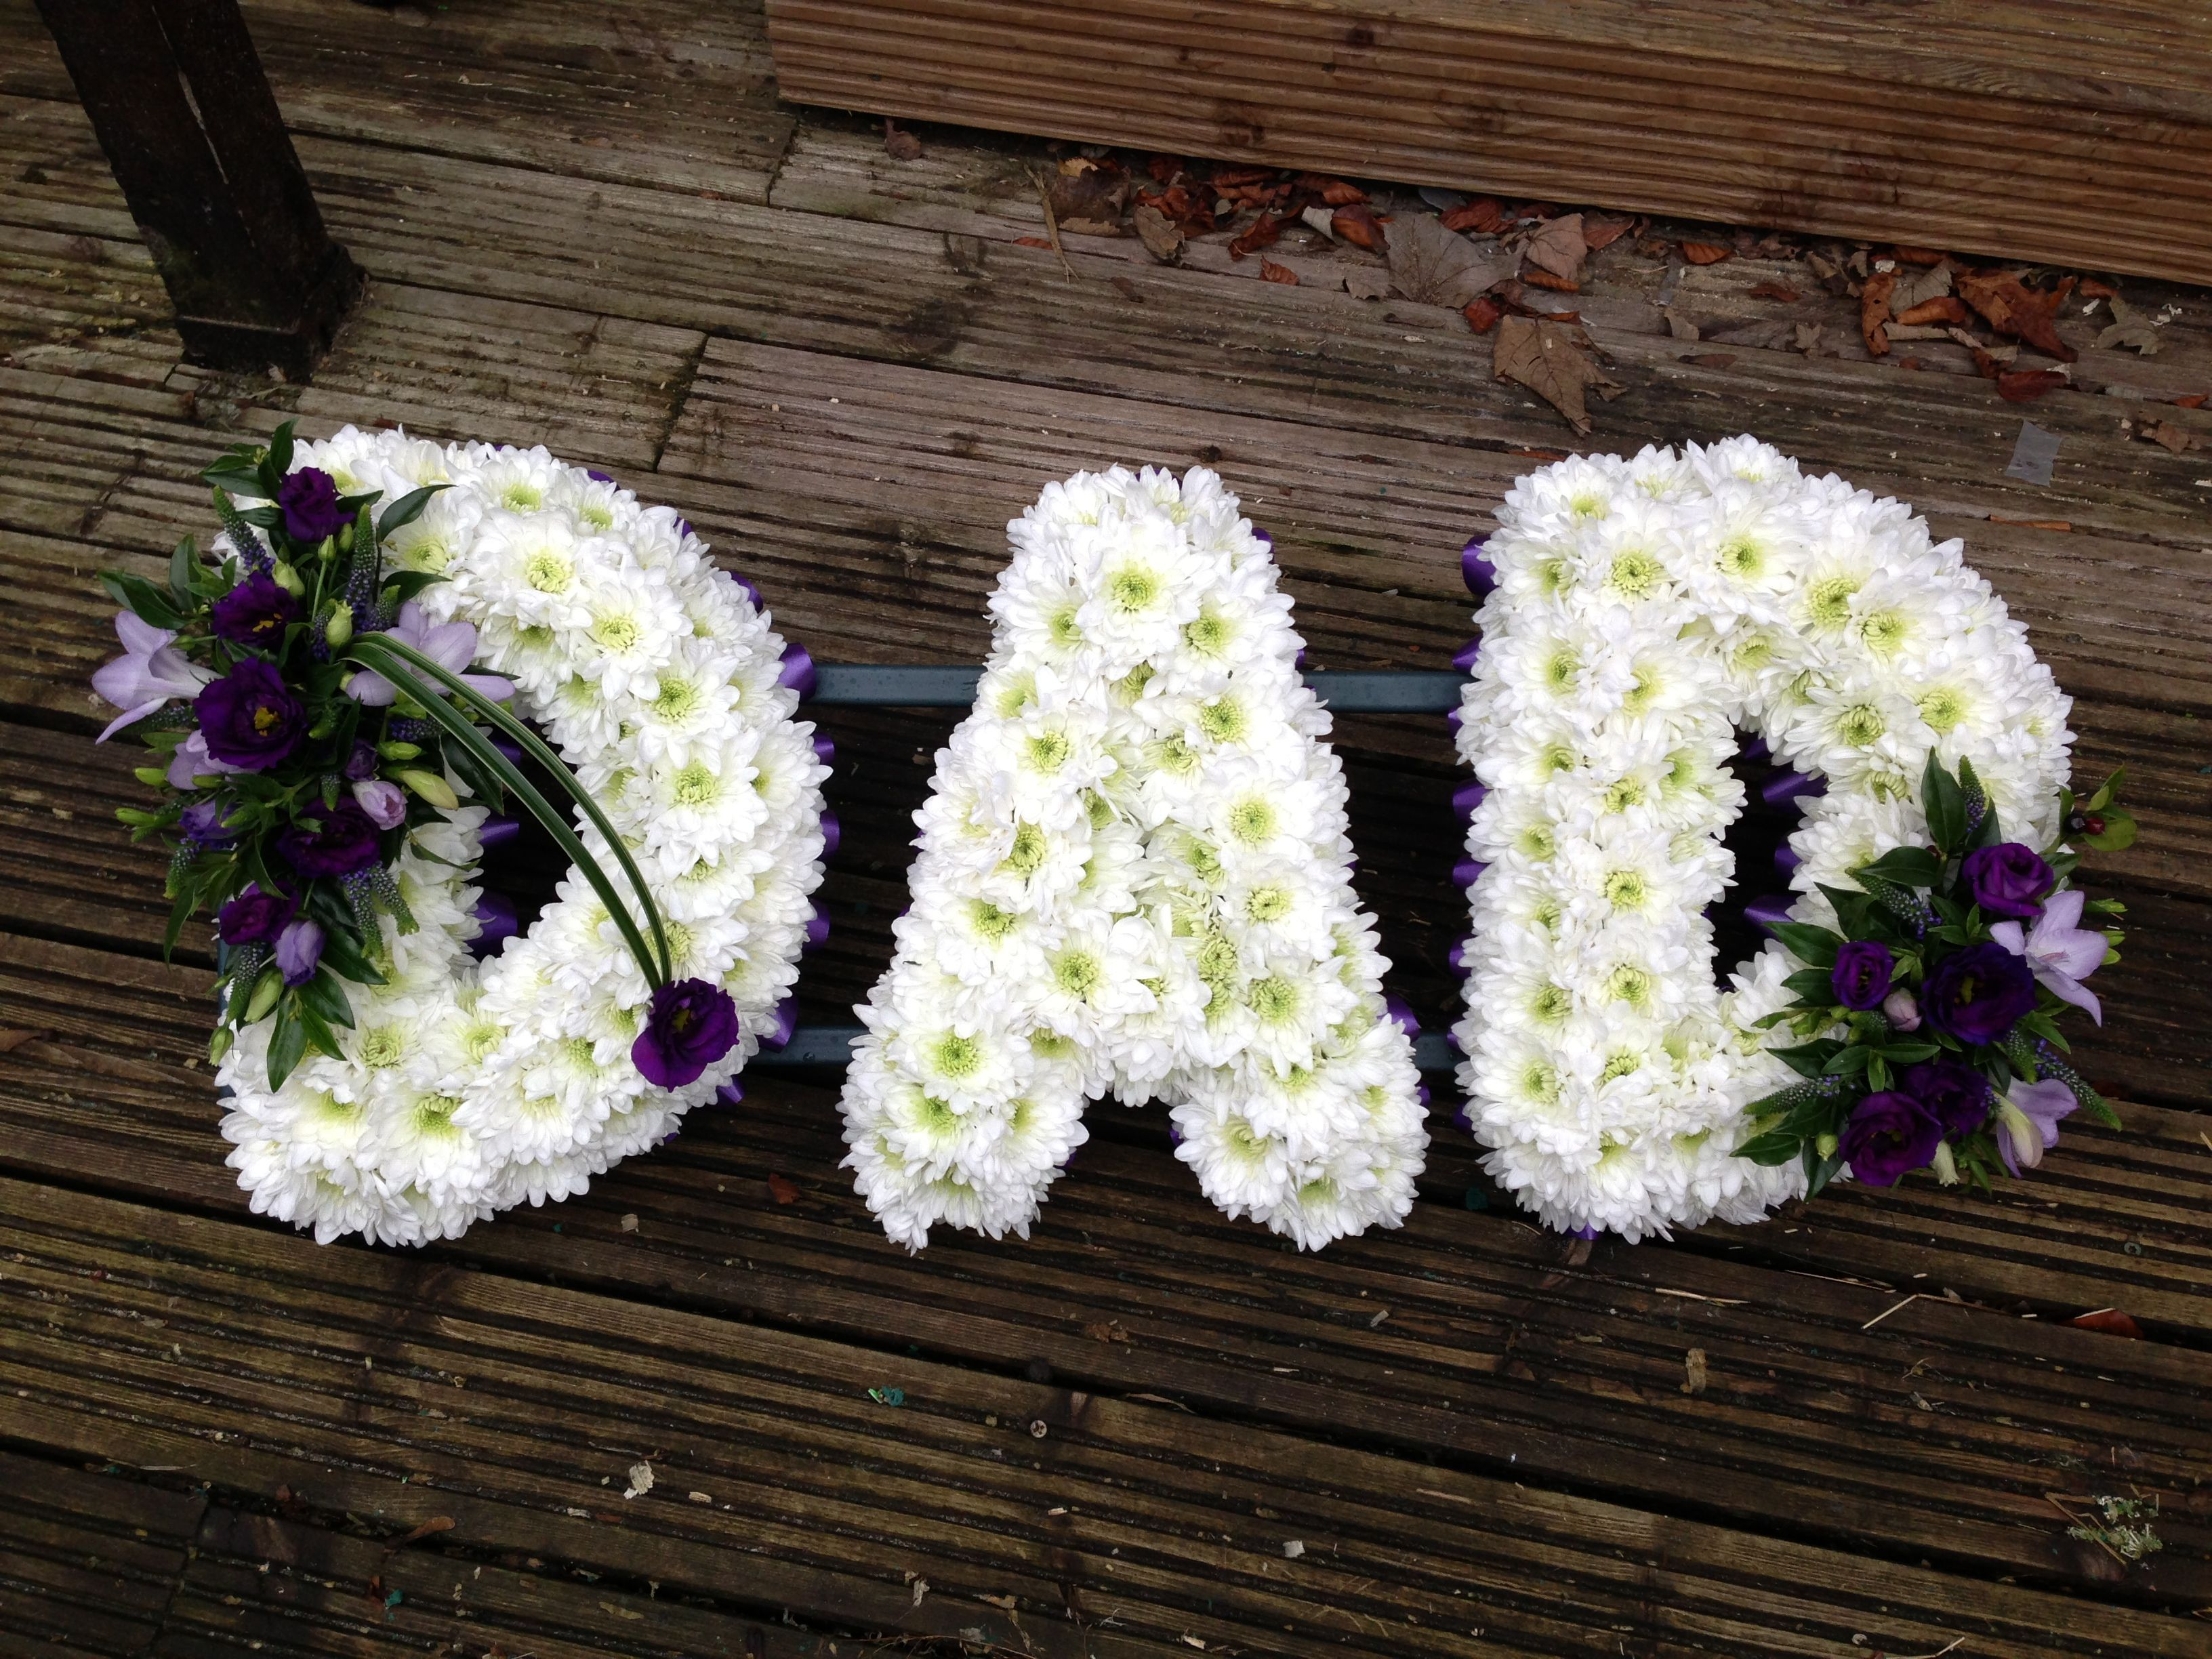 Beautiful dad funeral wreath purple and white made by daughter all beautiful dad funeral wreath purple and white made by daughter all the best check out the website for all flowers x weddings funerals christmas etc izmirmasajfo